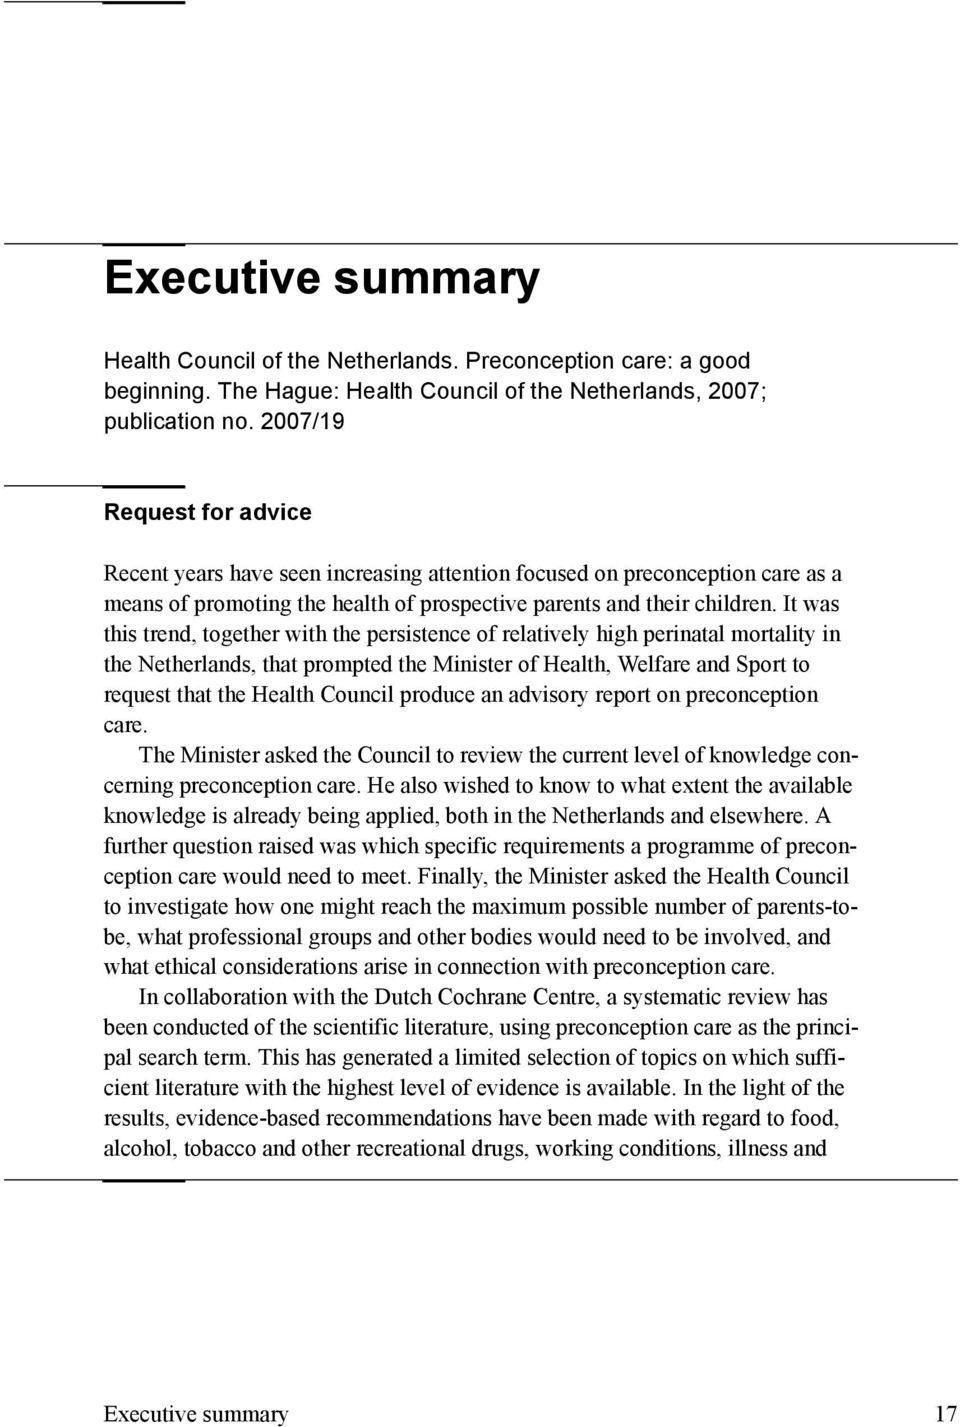 It was this trend, together with the persistence of relatively high perinatal mortality in the Netherlands, that prompted the Minister of Health, Welfare and Sport to request that the Health Council